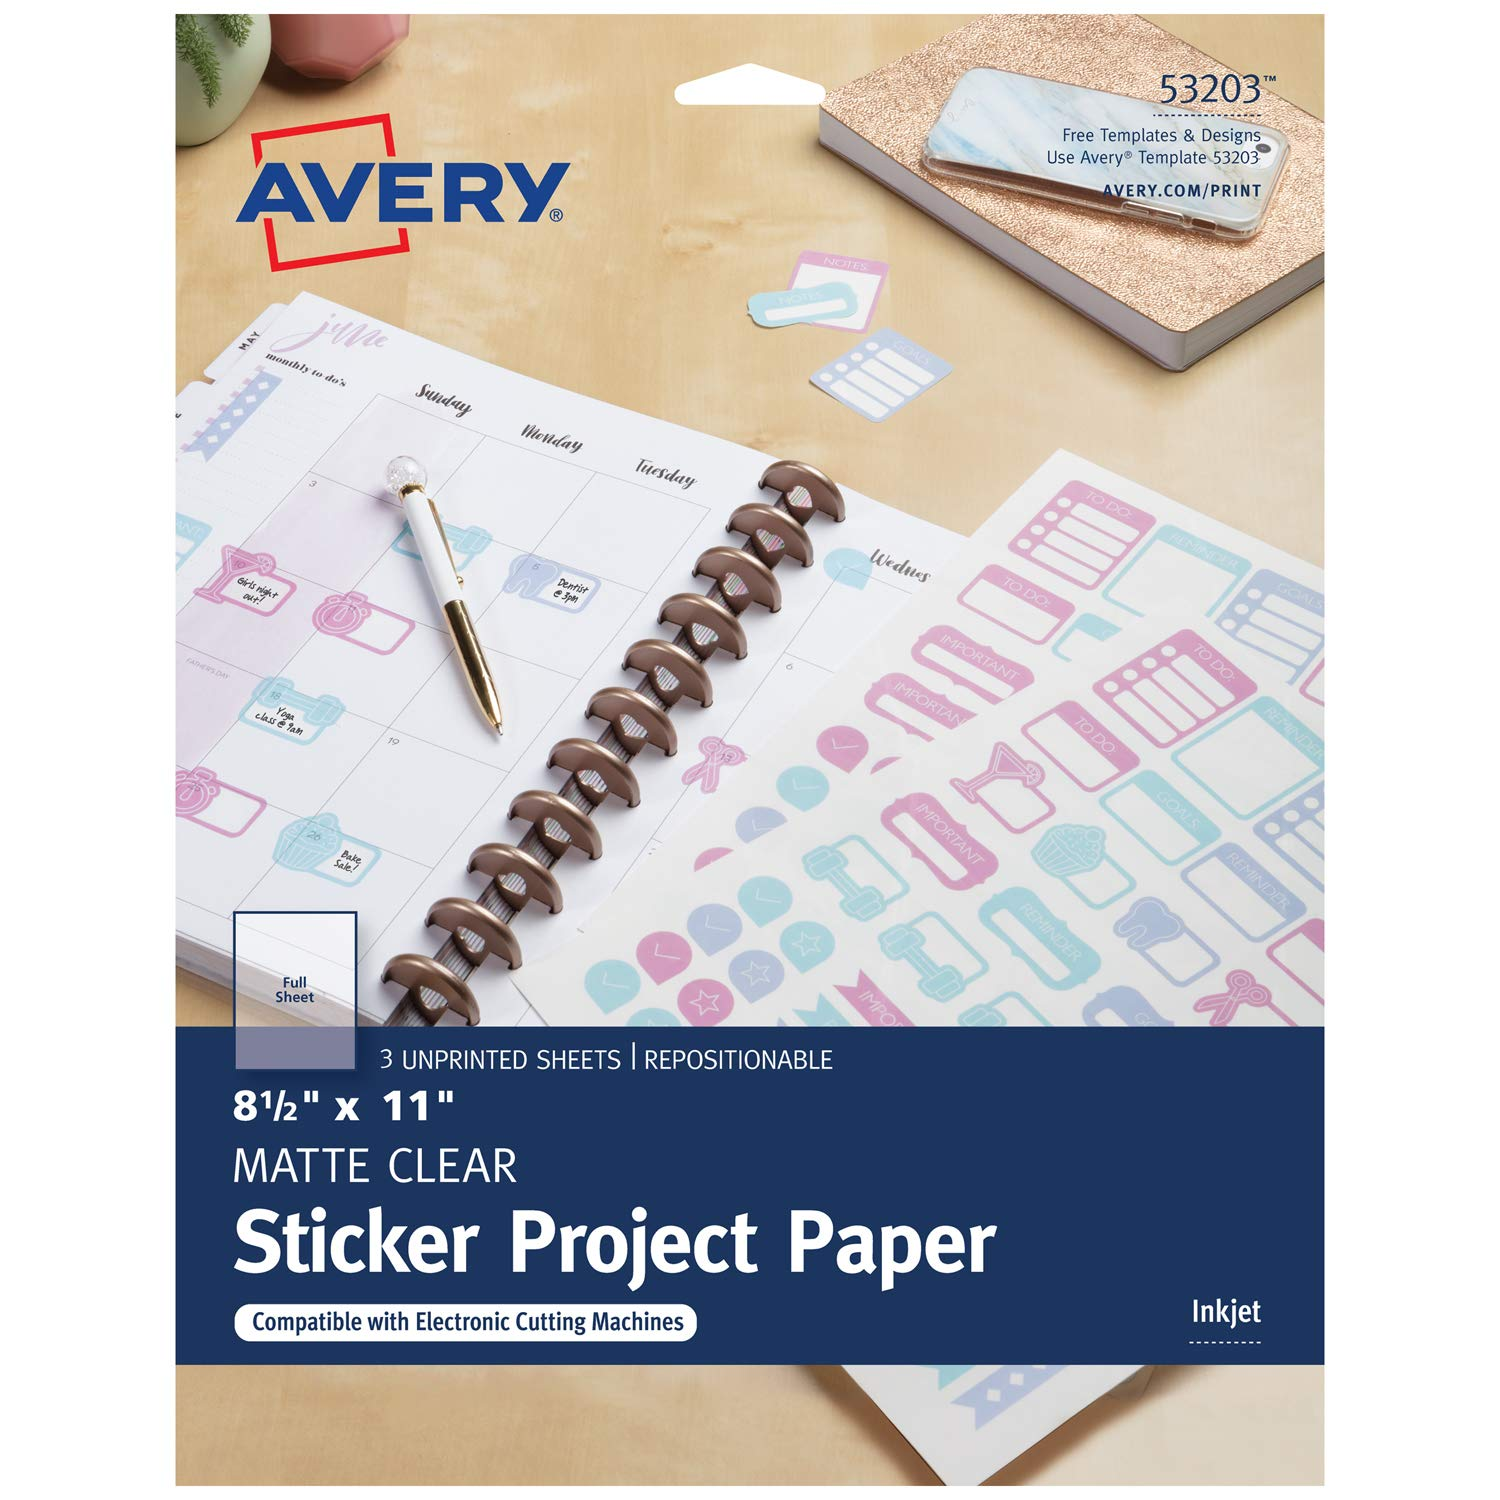 graphic about Printable Sticker Sheet called Avery Printable Sticker Paper, Matte Very clear, 8.5 x 11 Inches, Inkjet Printers, 3 Sheets (53203)